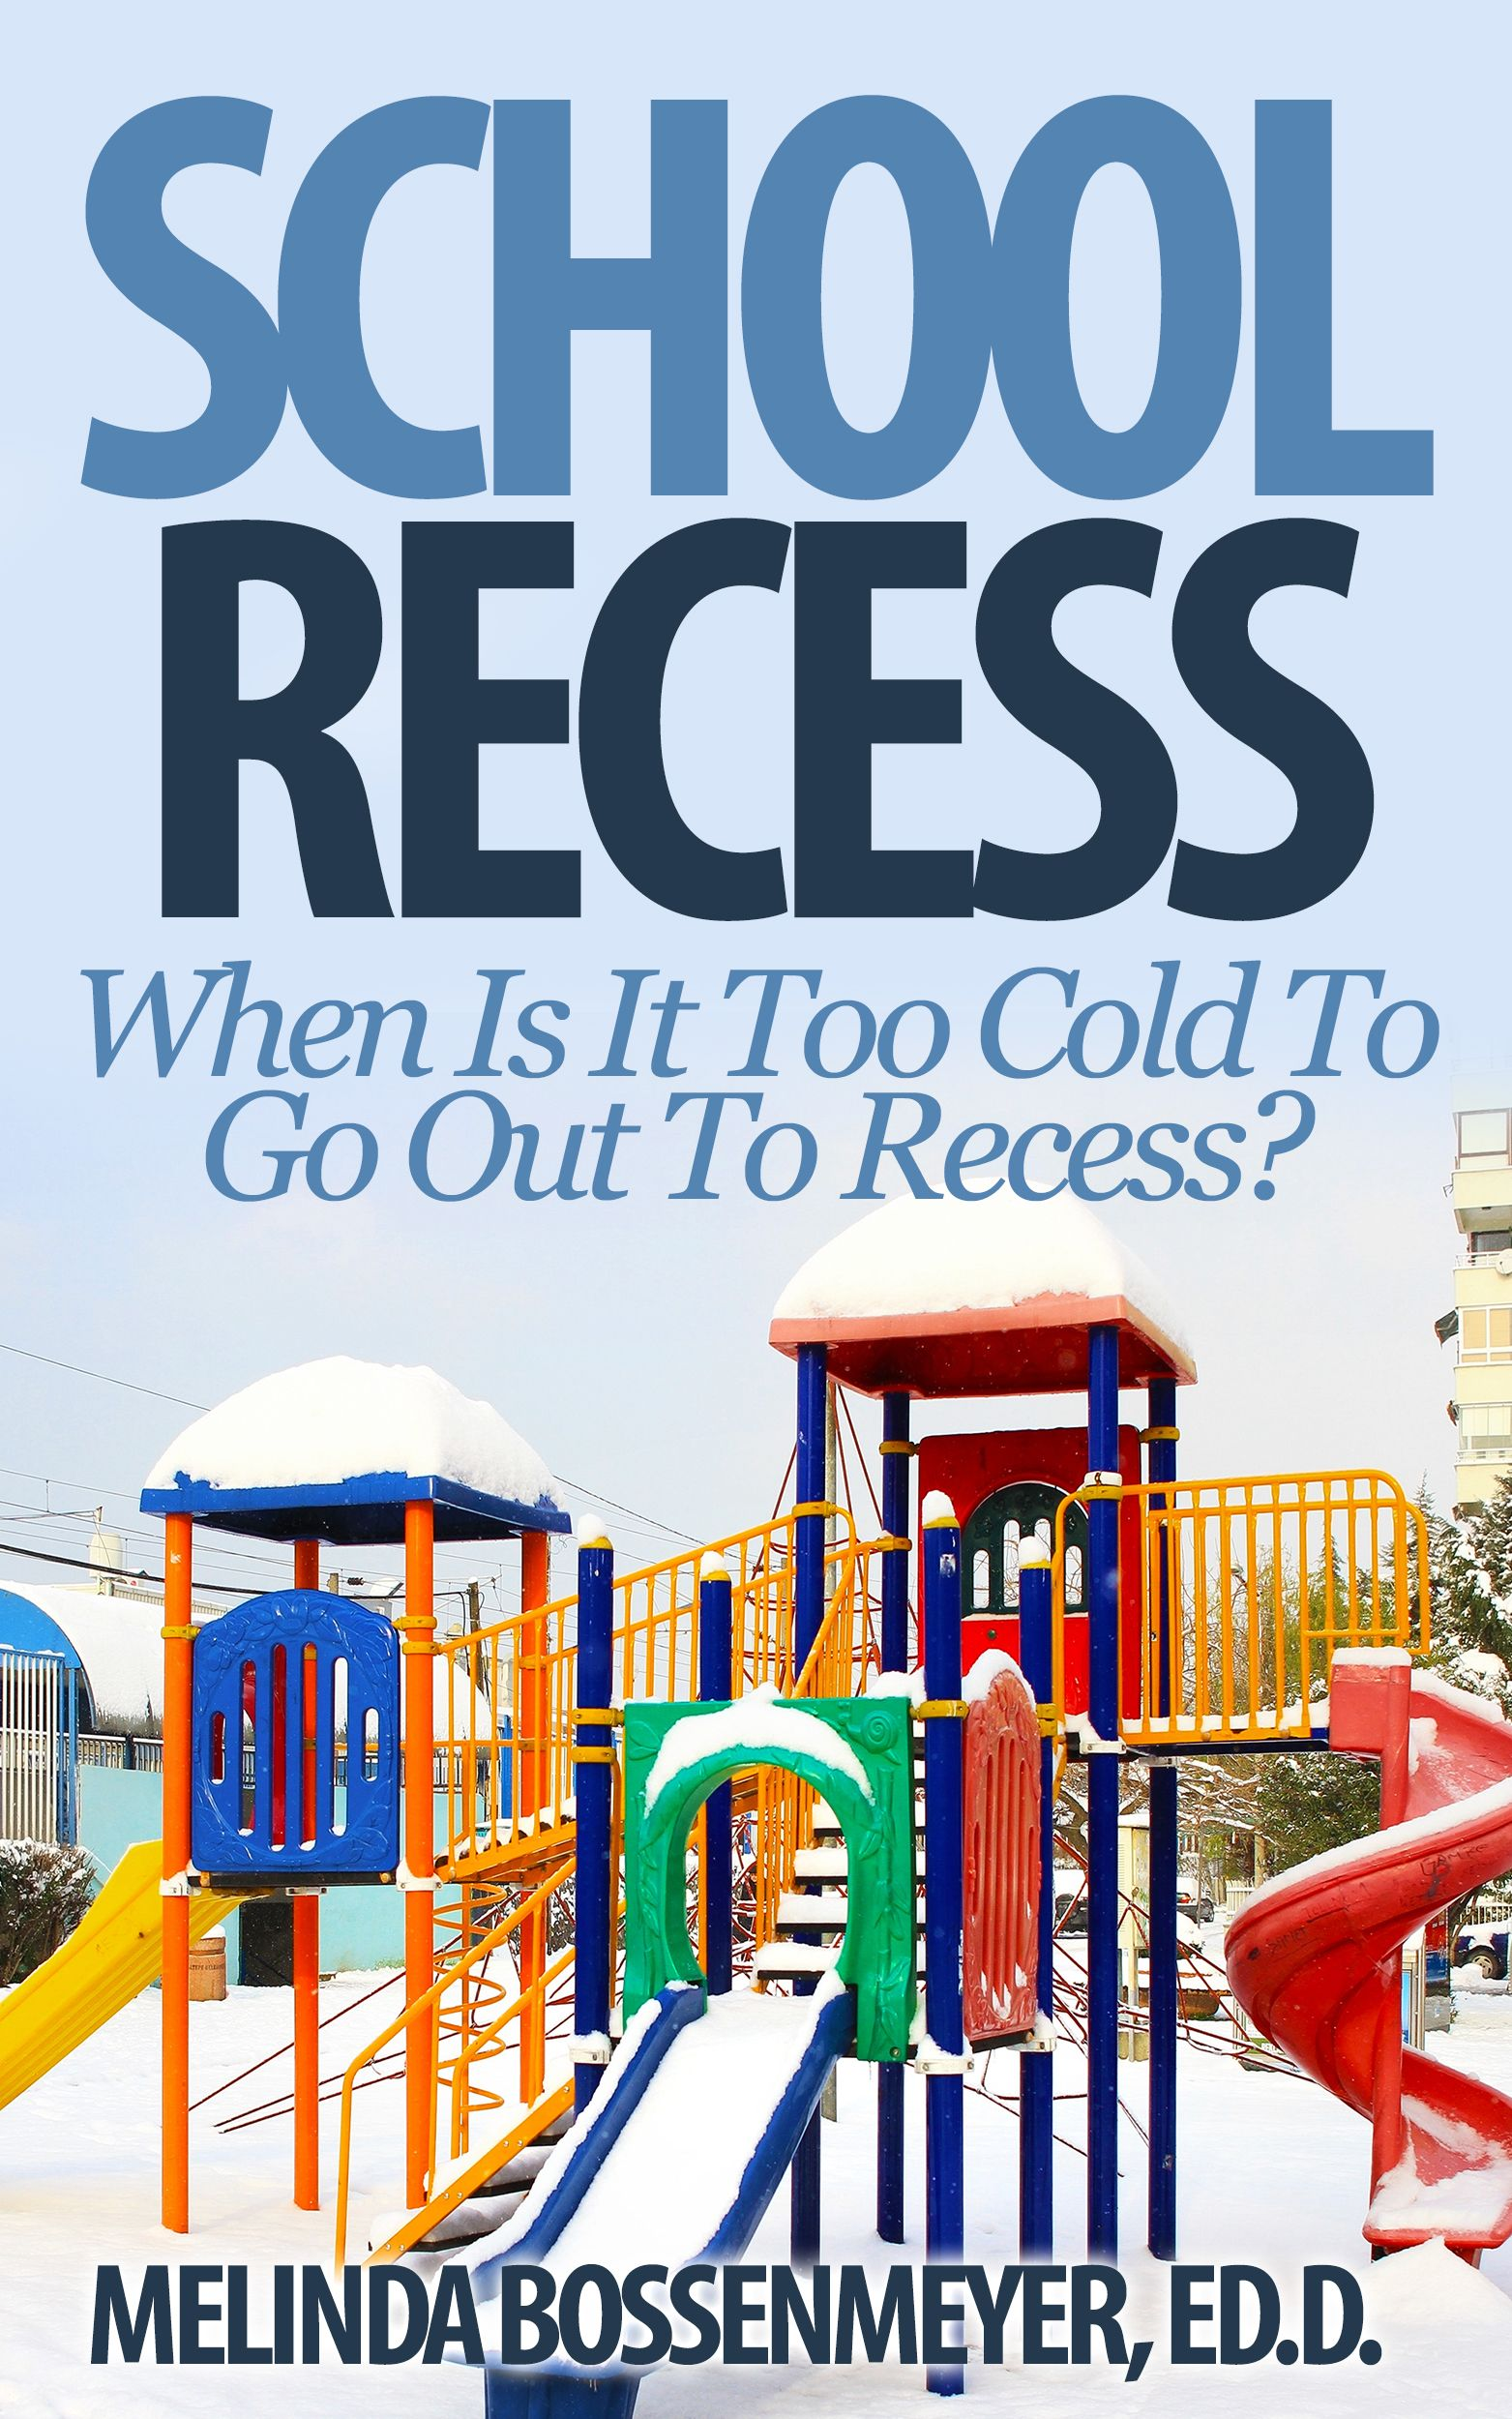 School Recess When Is It Too Cold to Go Out to Recess